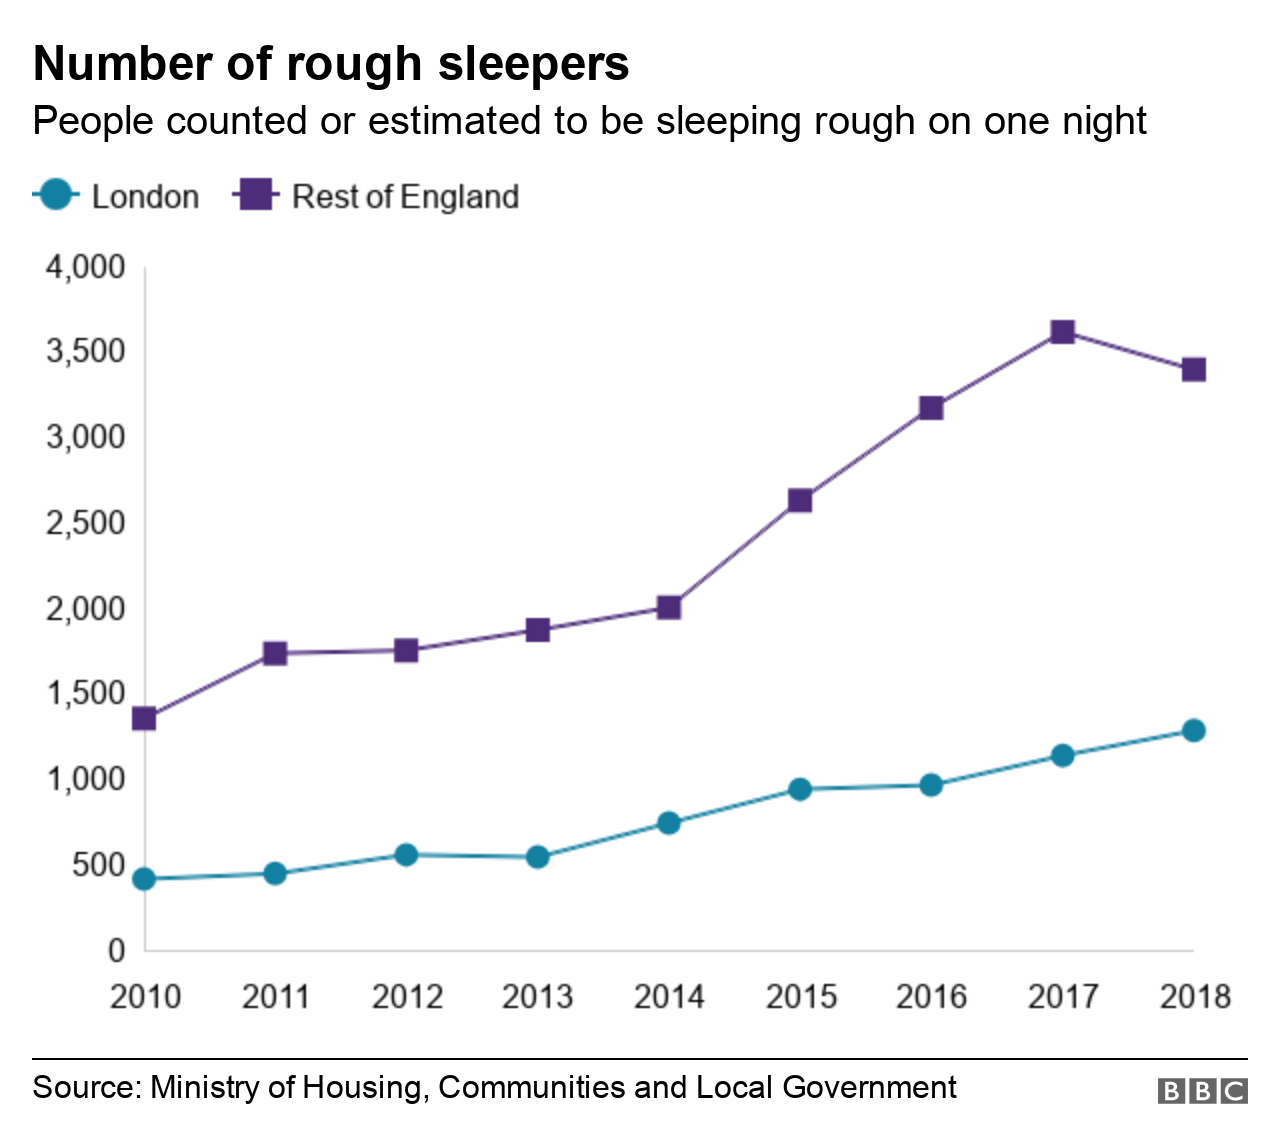 Chart showing number of rough sleepers in England